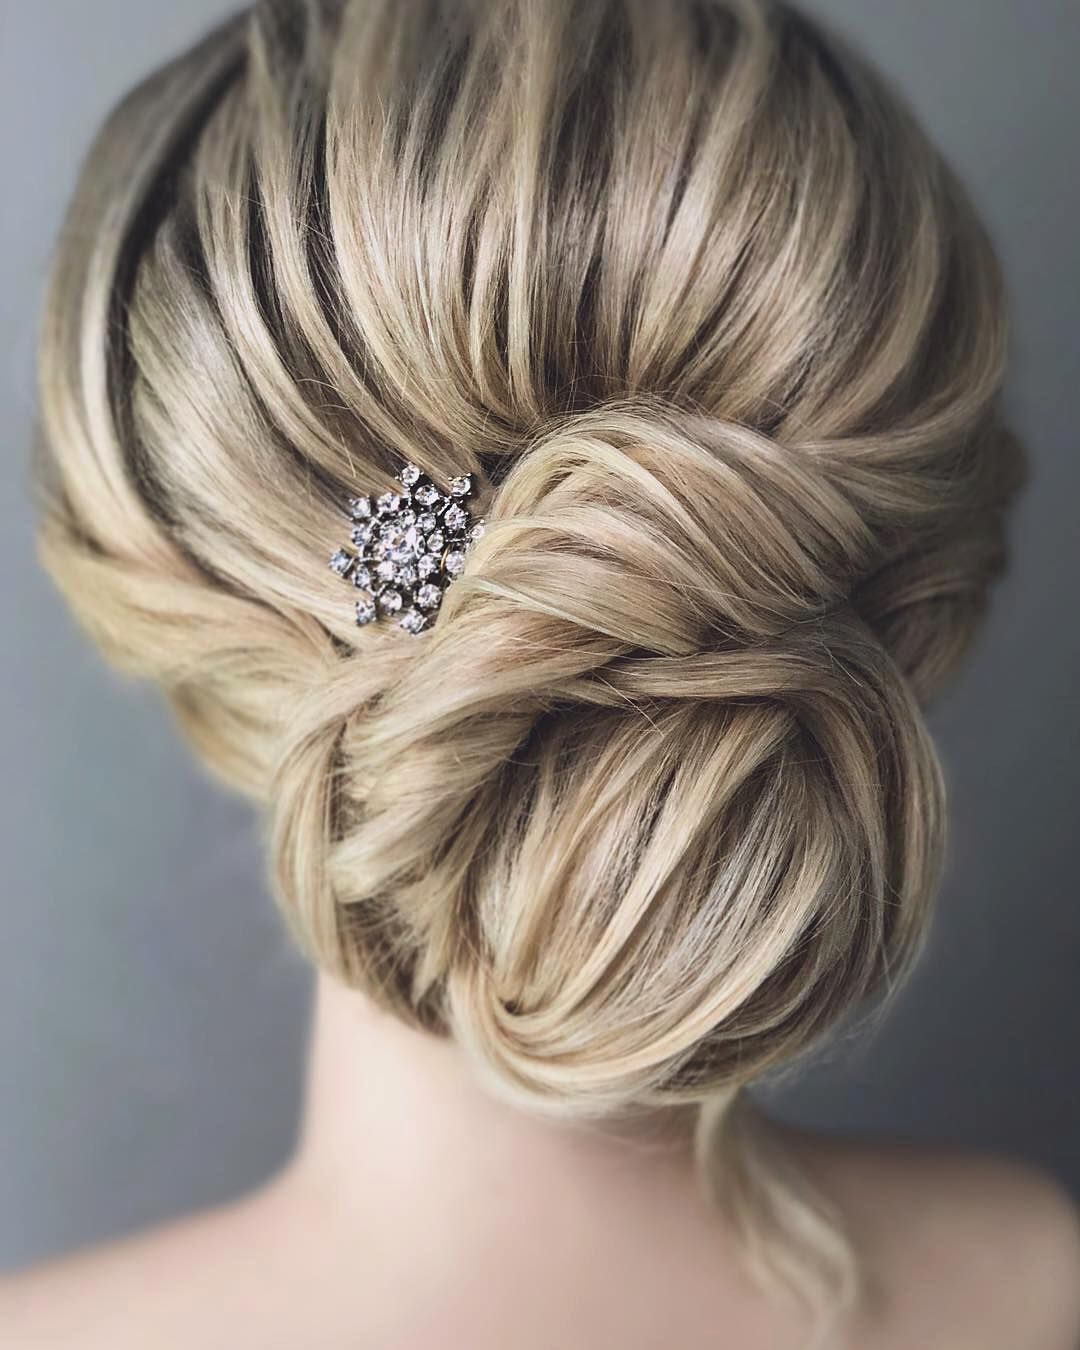 Wedding Hairstyle Nashville: Every Snowflake Is Unique, Yet They Are Each Perfect. ️